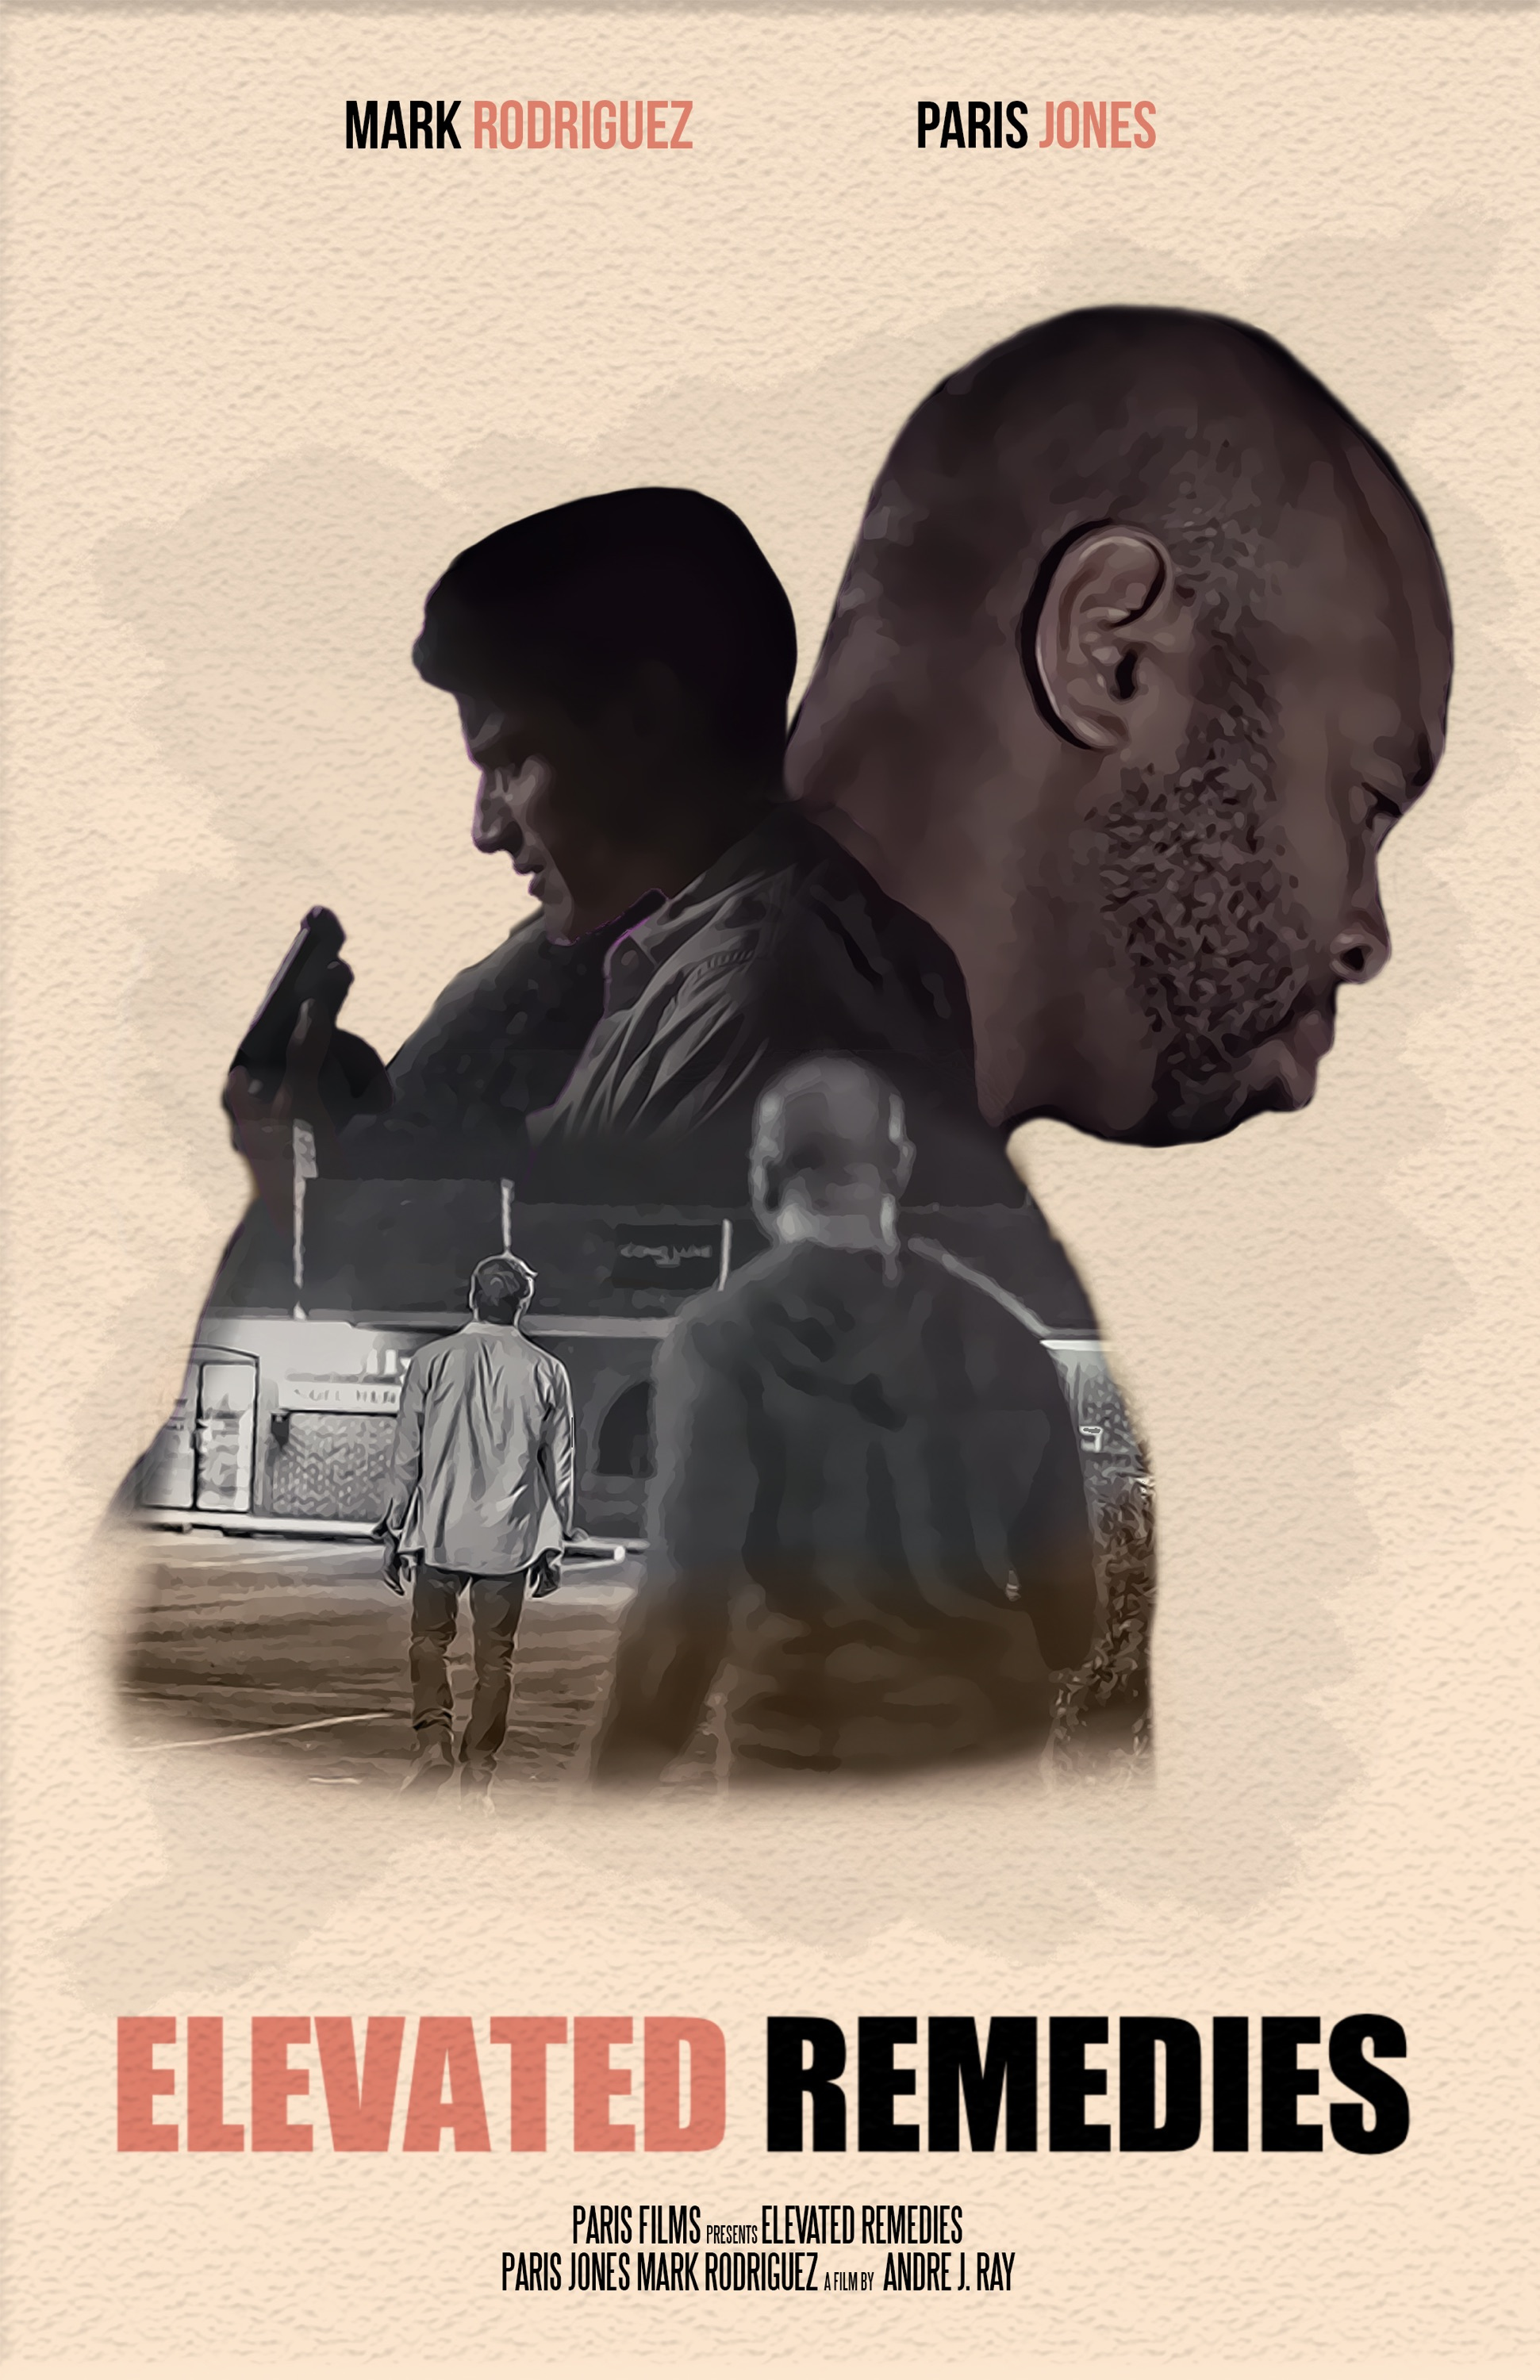 Elevated Remedies - As a man prepares to shoot himself he notices another man about to jump off the building and intervenes.Written &Directed by Andre J. Ray